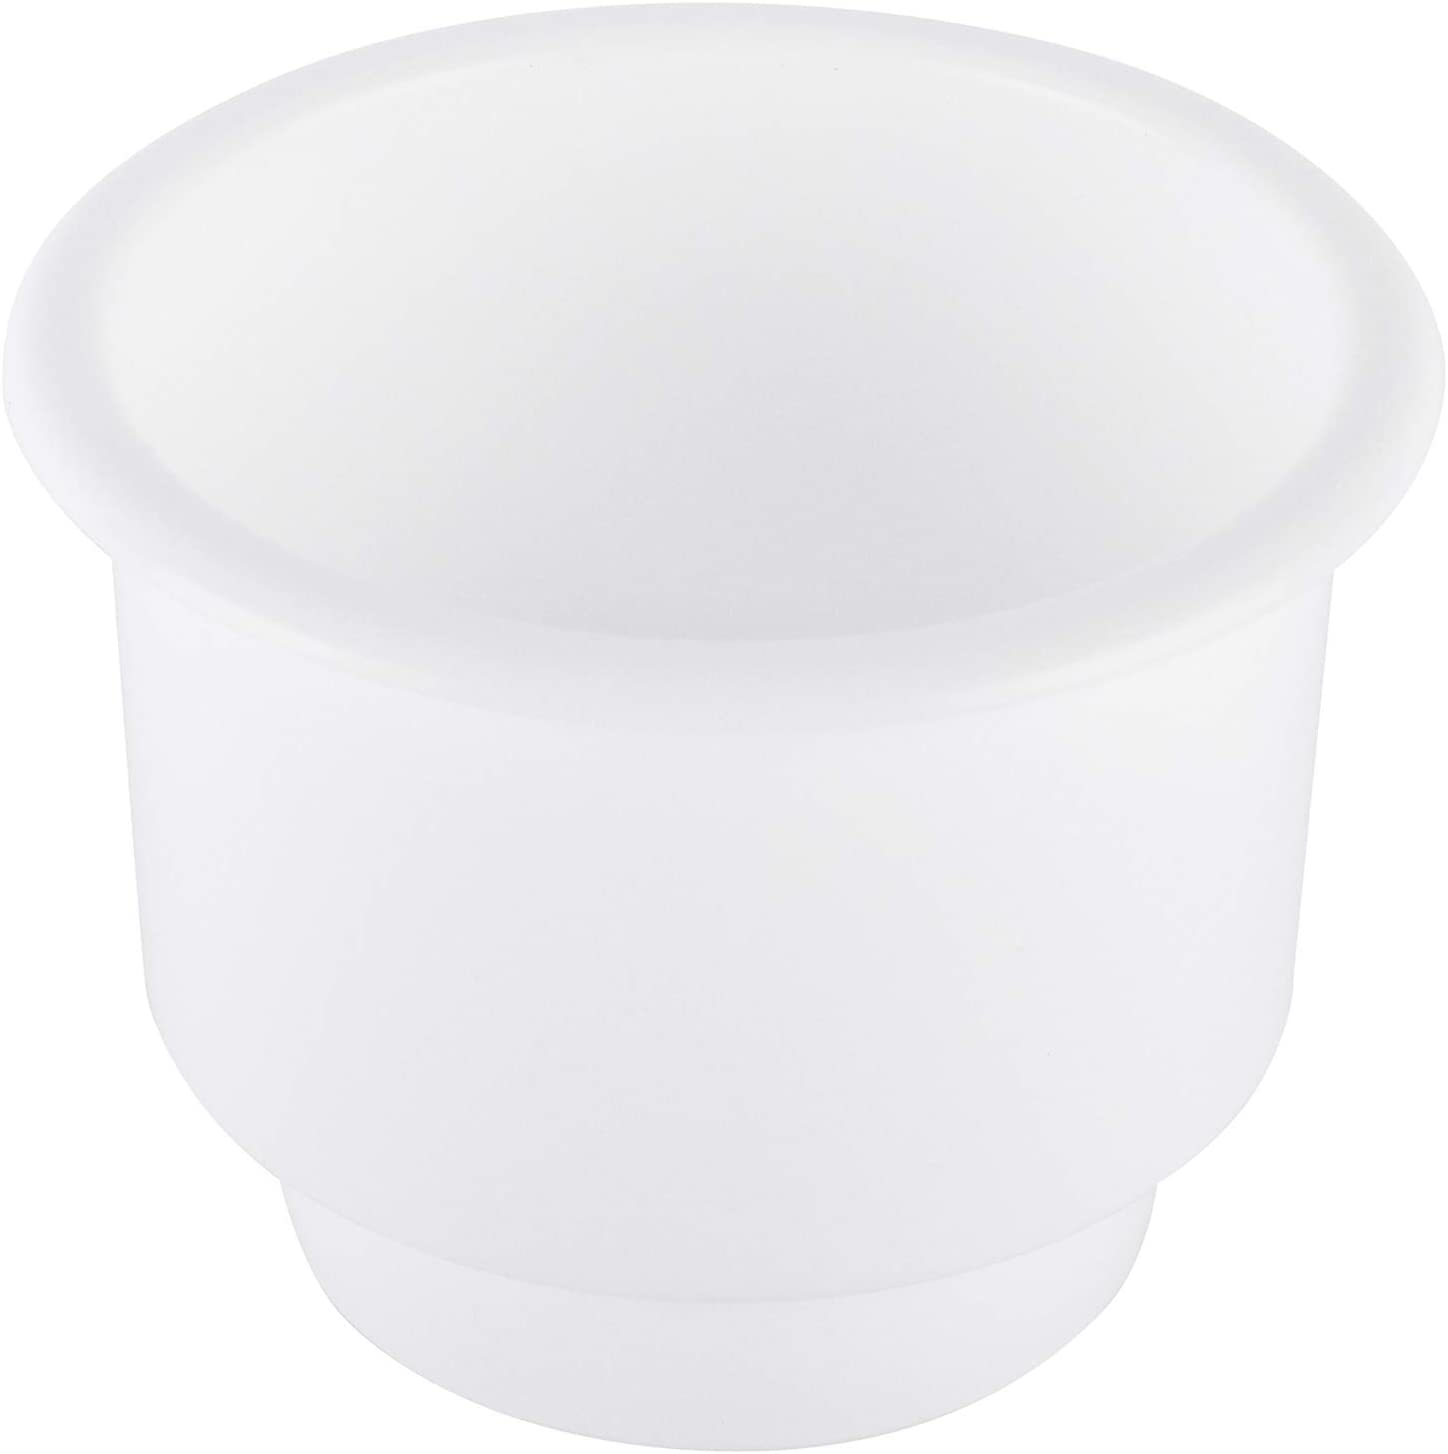 Artilife 4Pcs White Universal Plastic Cup Drink Can Holder with Drain Hole for Car Truck Boat Marine RV